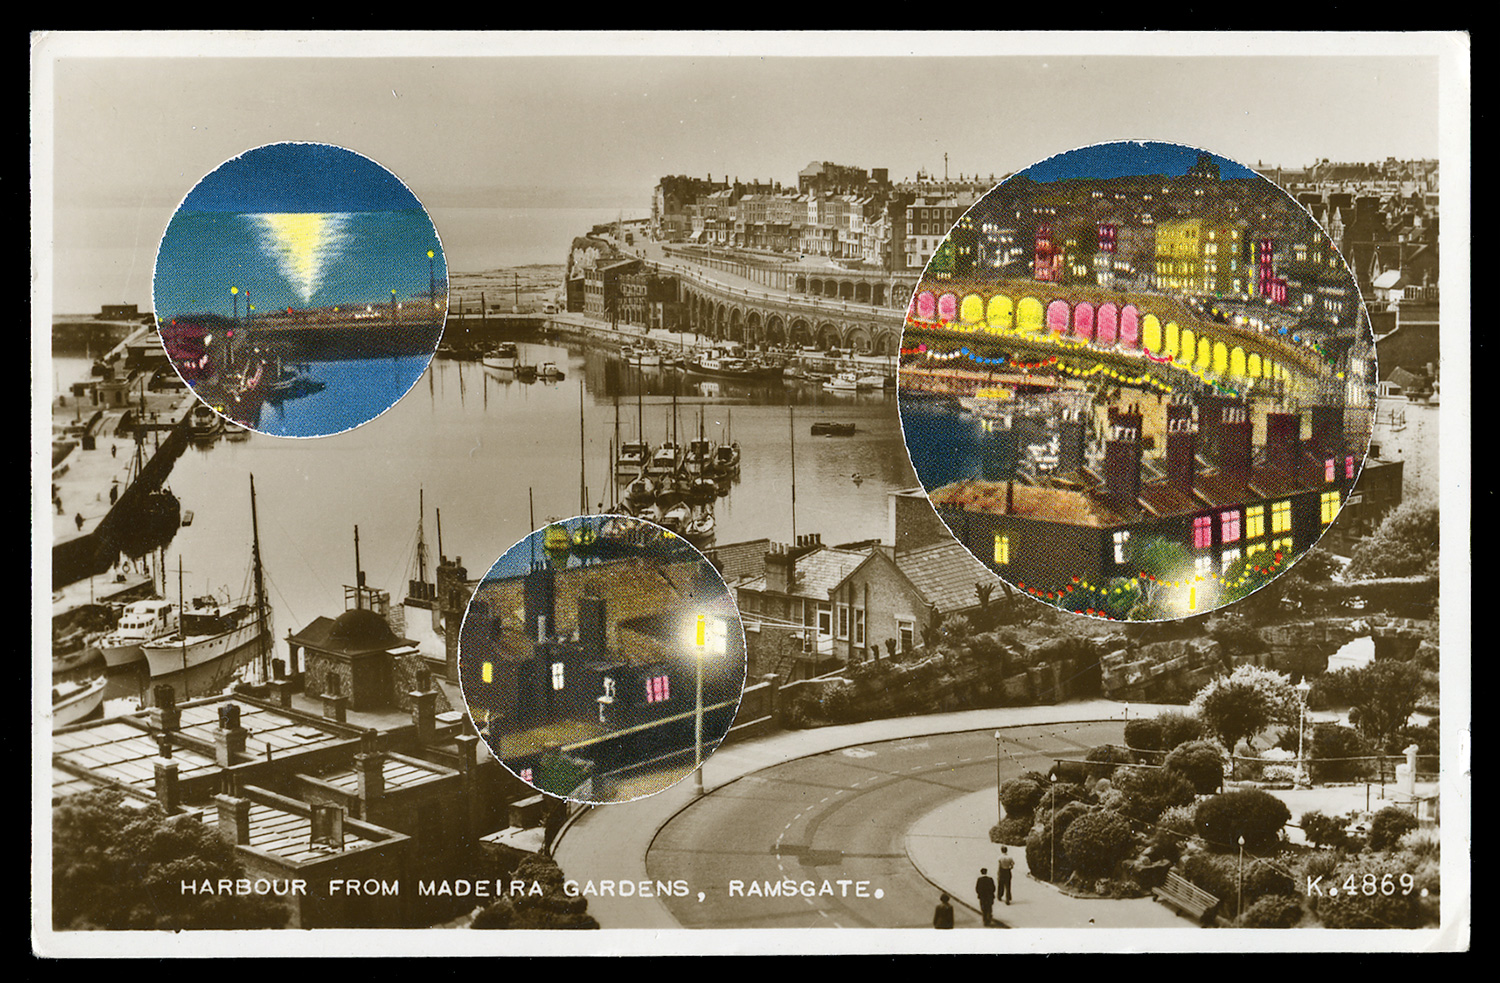 Harbour from Madeira Gardens, Ramsgate, 2017